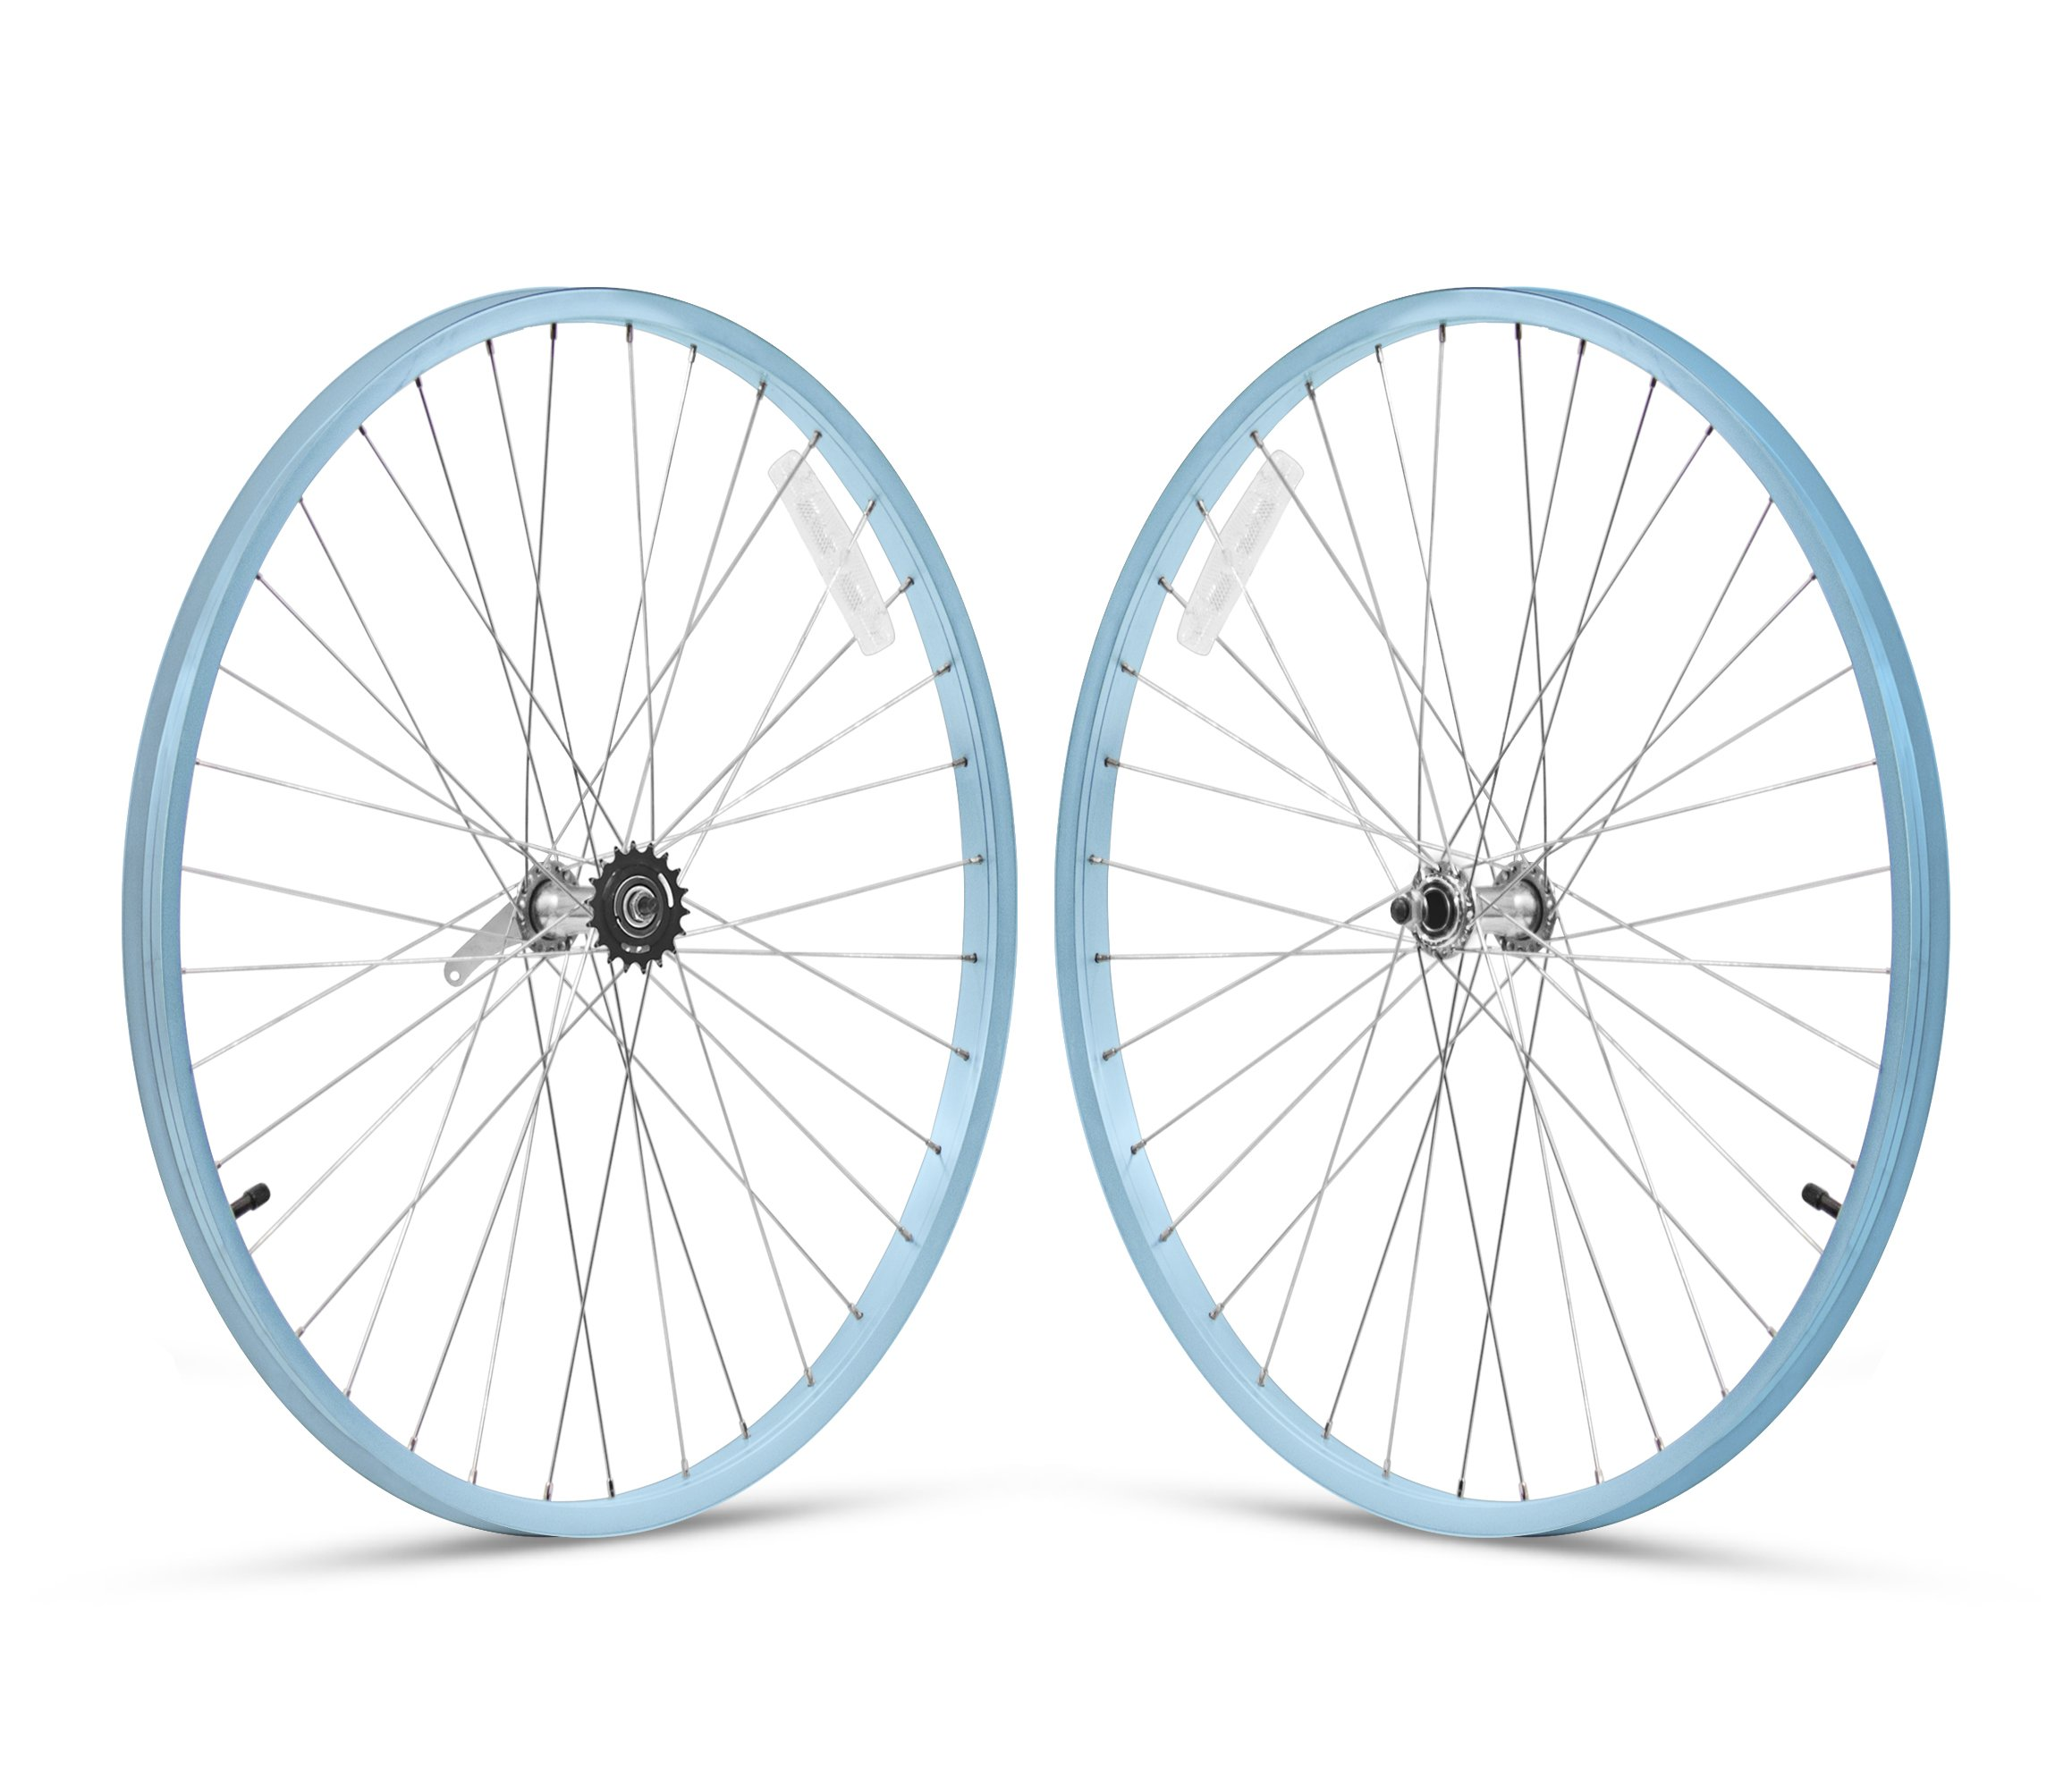 Firmstrong 1-Speed Beach Cruiser Bicycle Wheelset, Front/Rear, Baby Blue, 26''